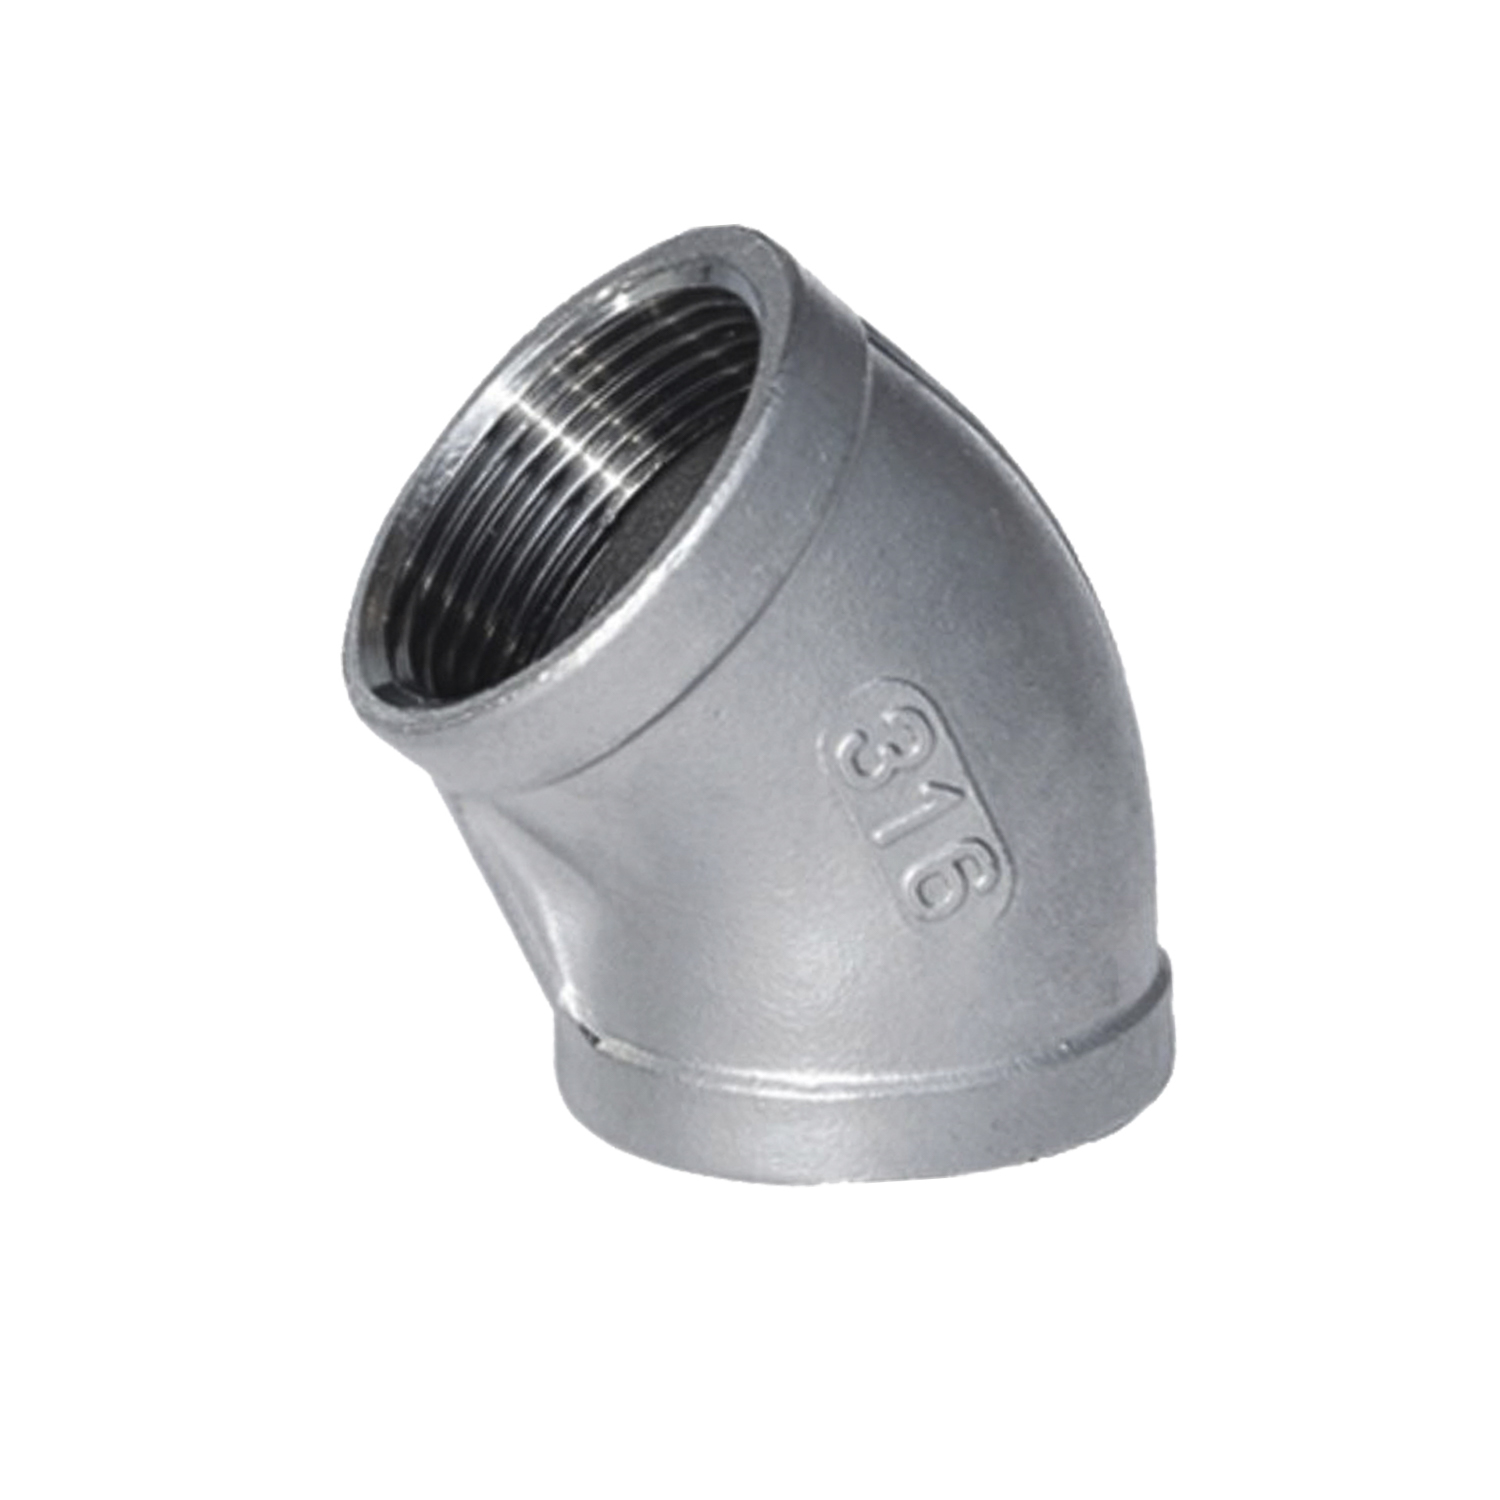 Thread Specification : 1 14 Sturdy 10pcs 45 Degree Elbow 1//4-2 Female Fitting 304 Stainless Steel Pipe Biodiesel Degree